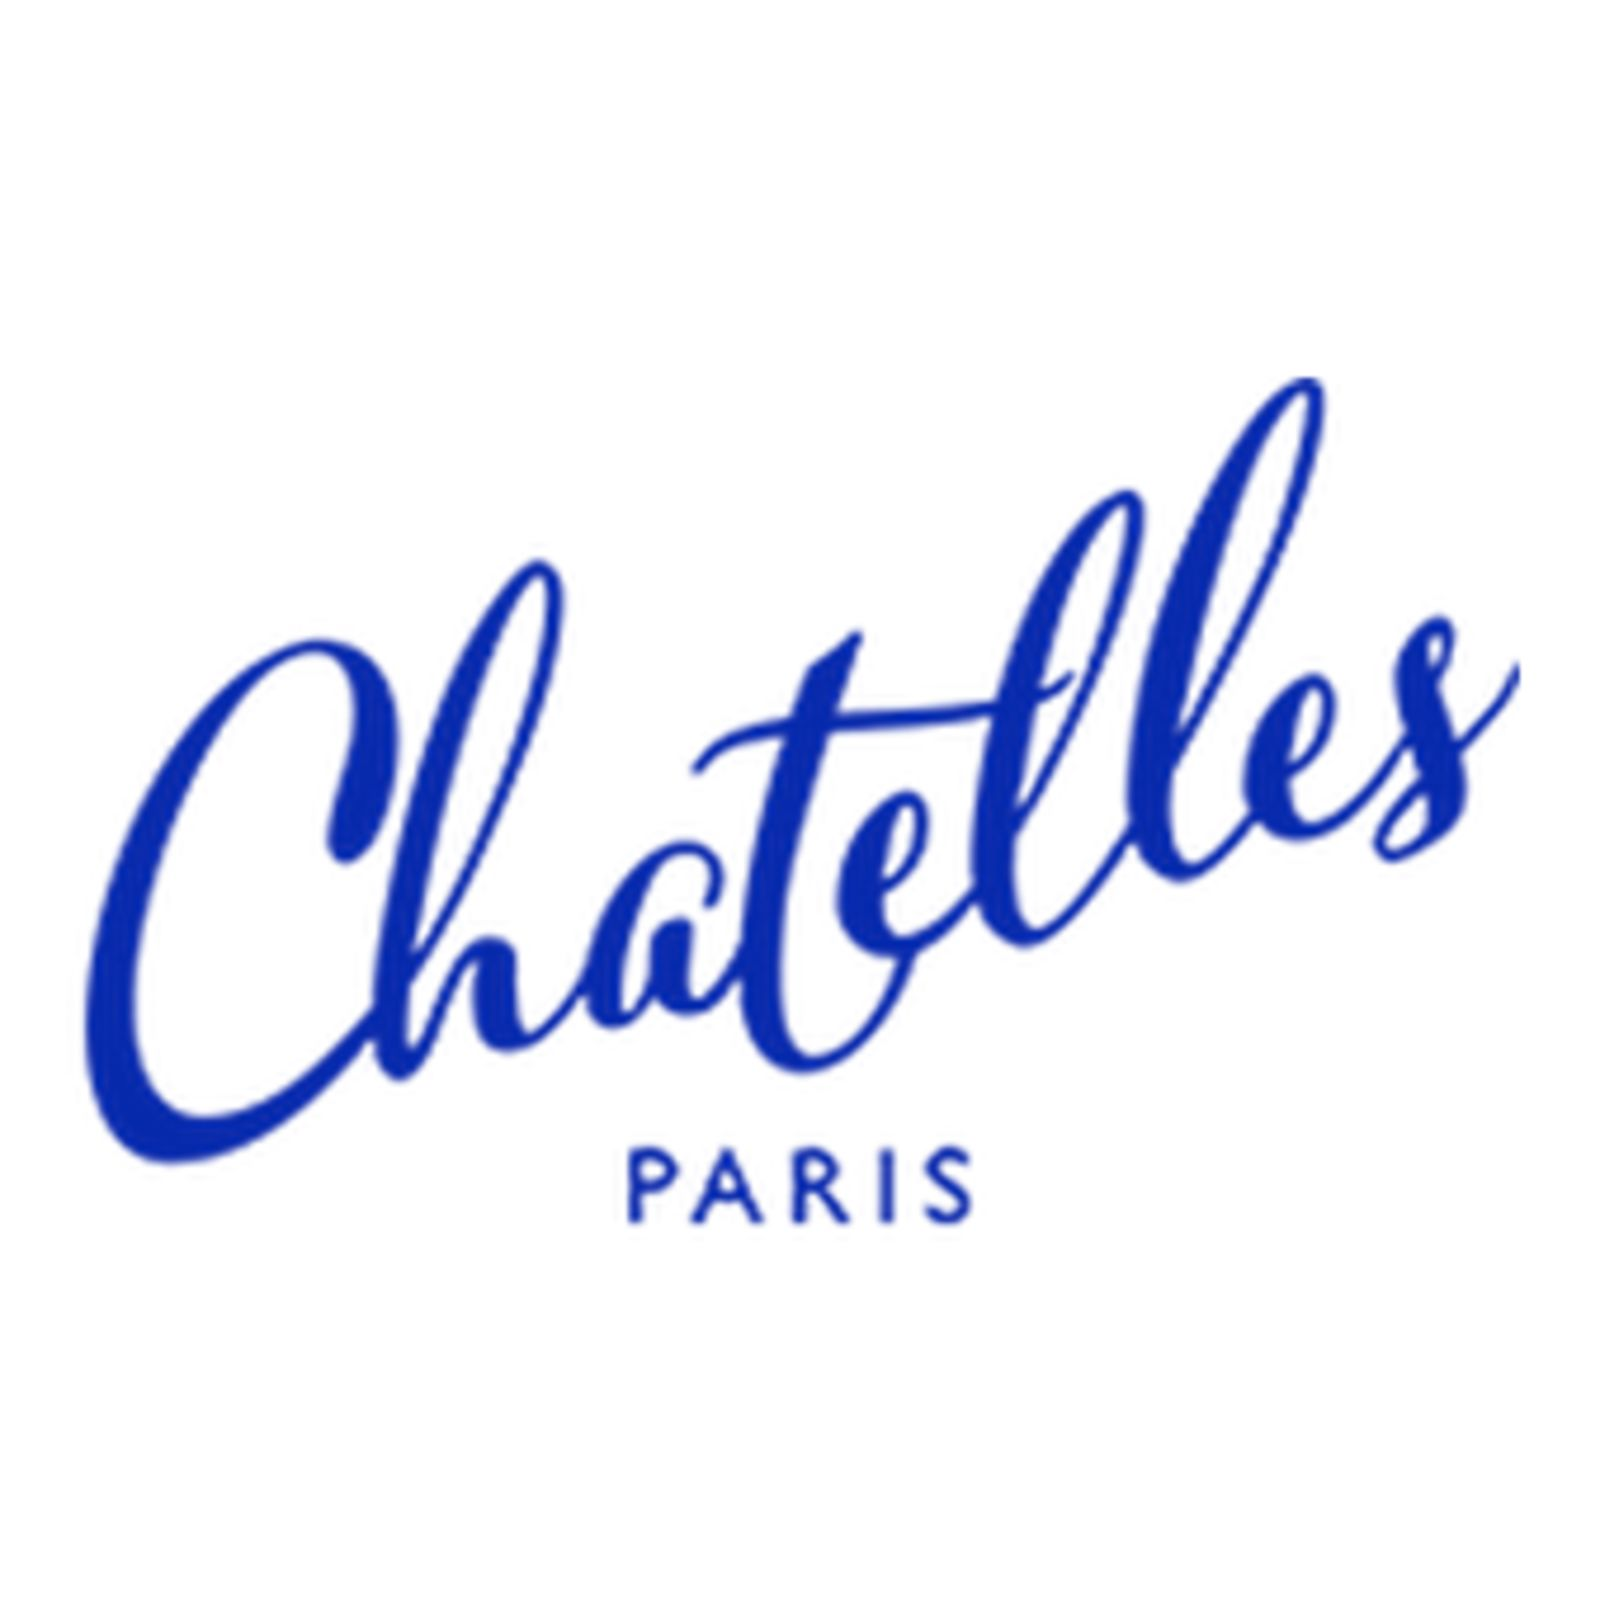 Chatelles Paris